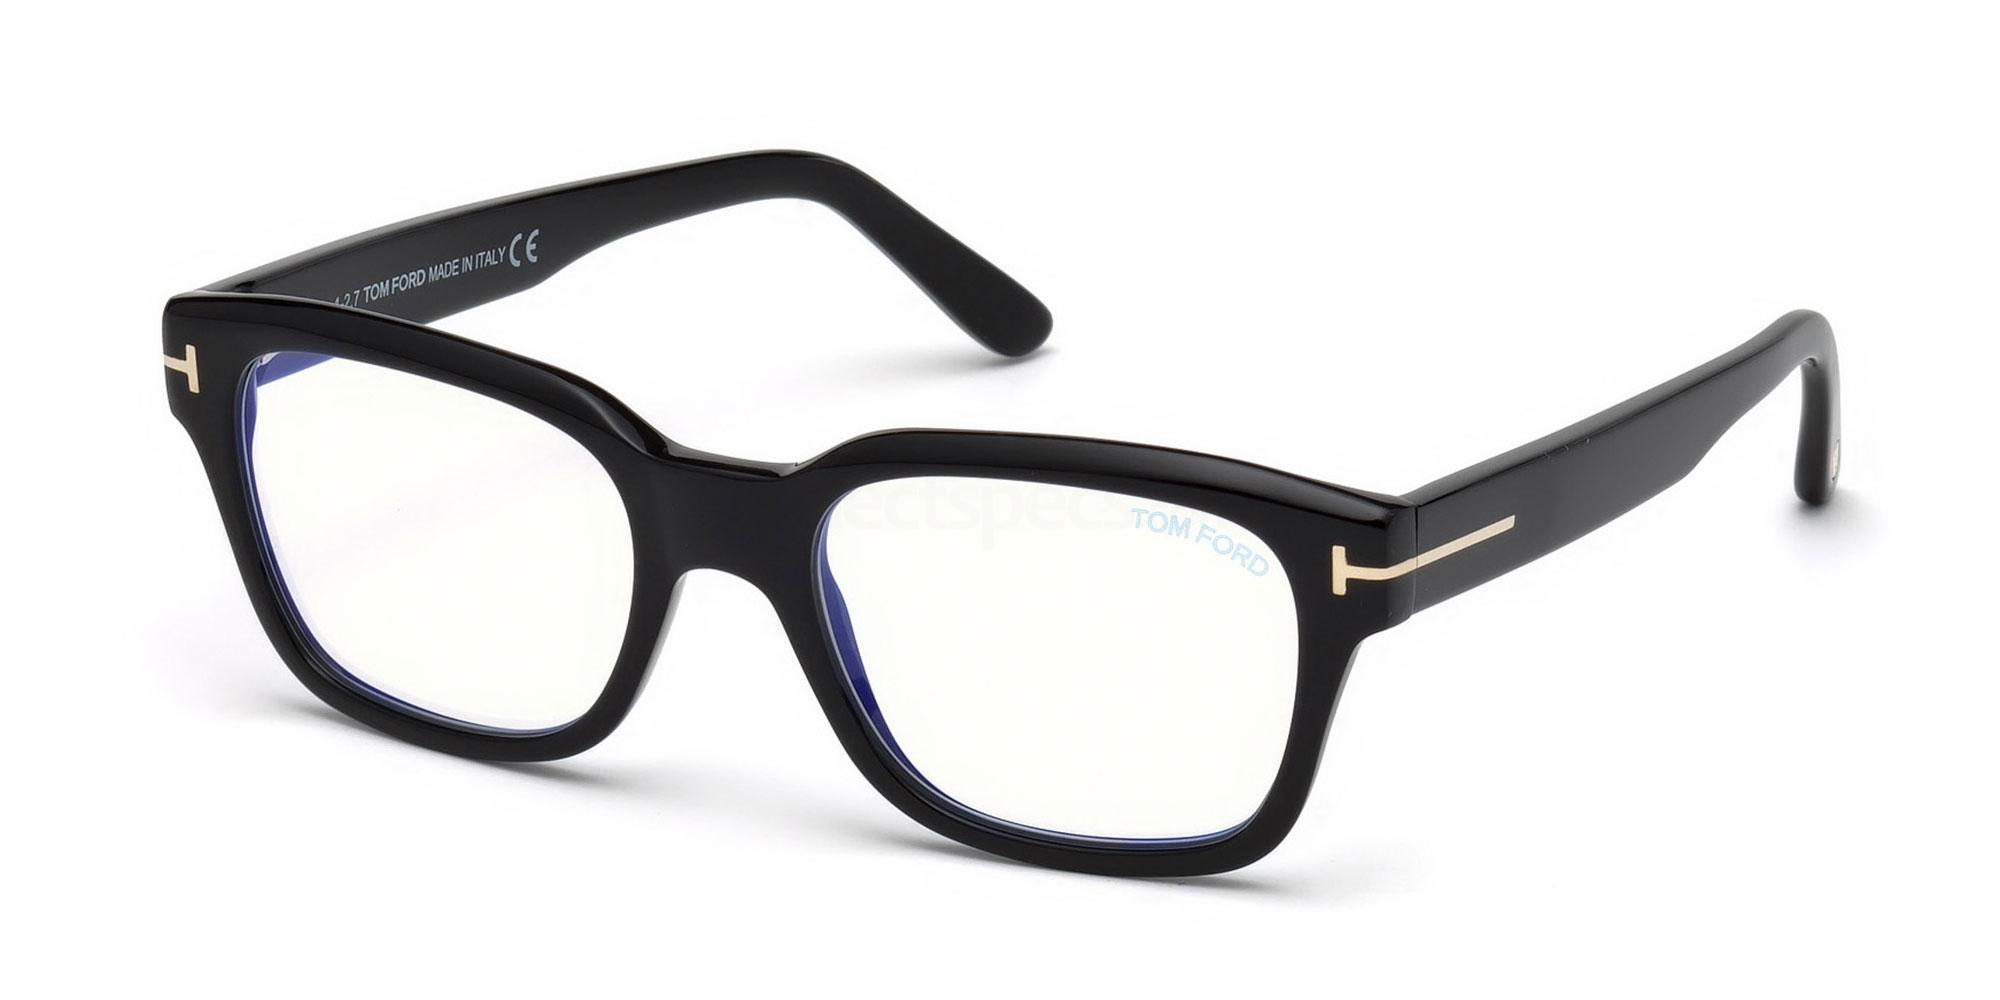 001 FT5535-B Glasses, Tom Ford